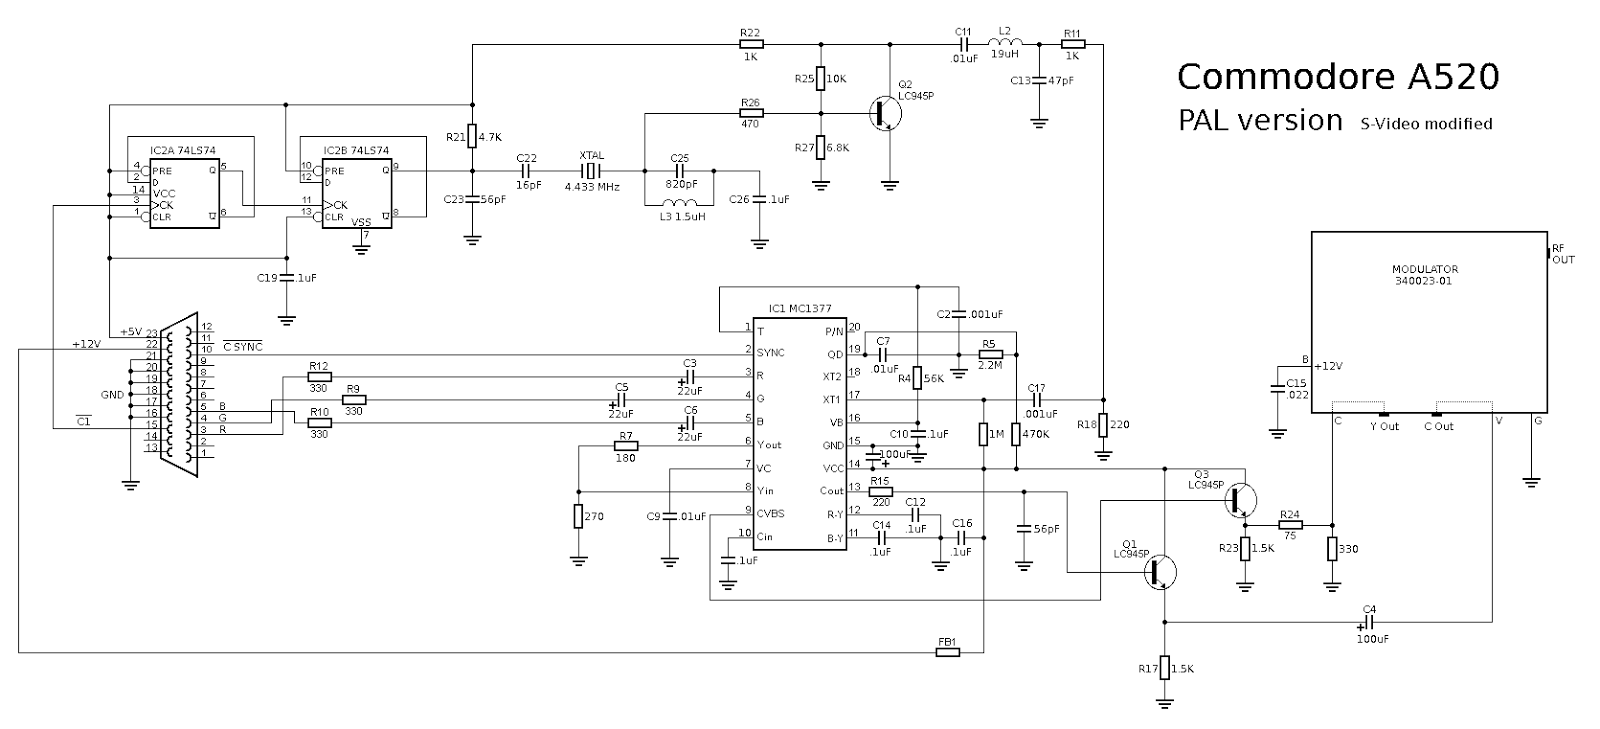 Blitterwolf October 2016 Battery Monitor Circuit Diagram Likewise Nicd Charger Schematic For A Modified S Video A520